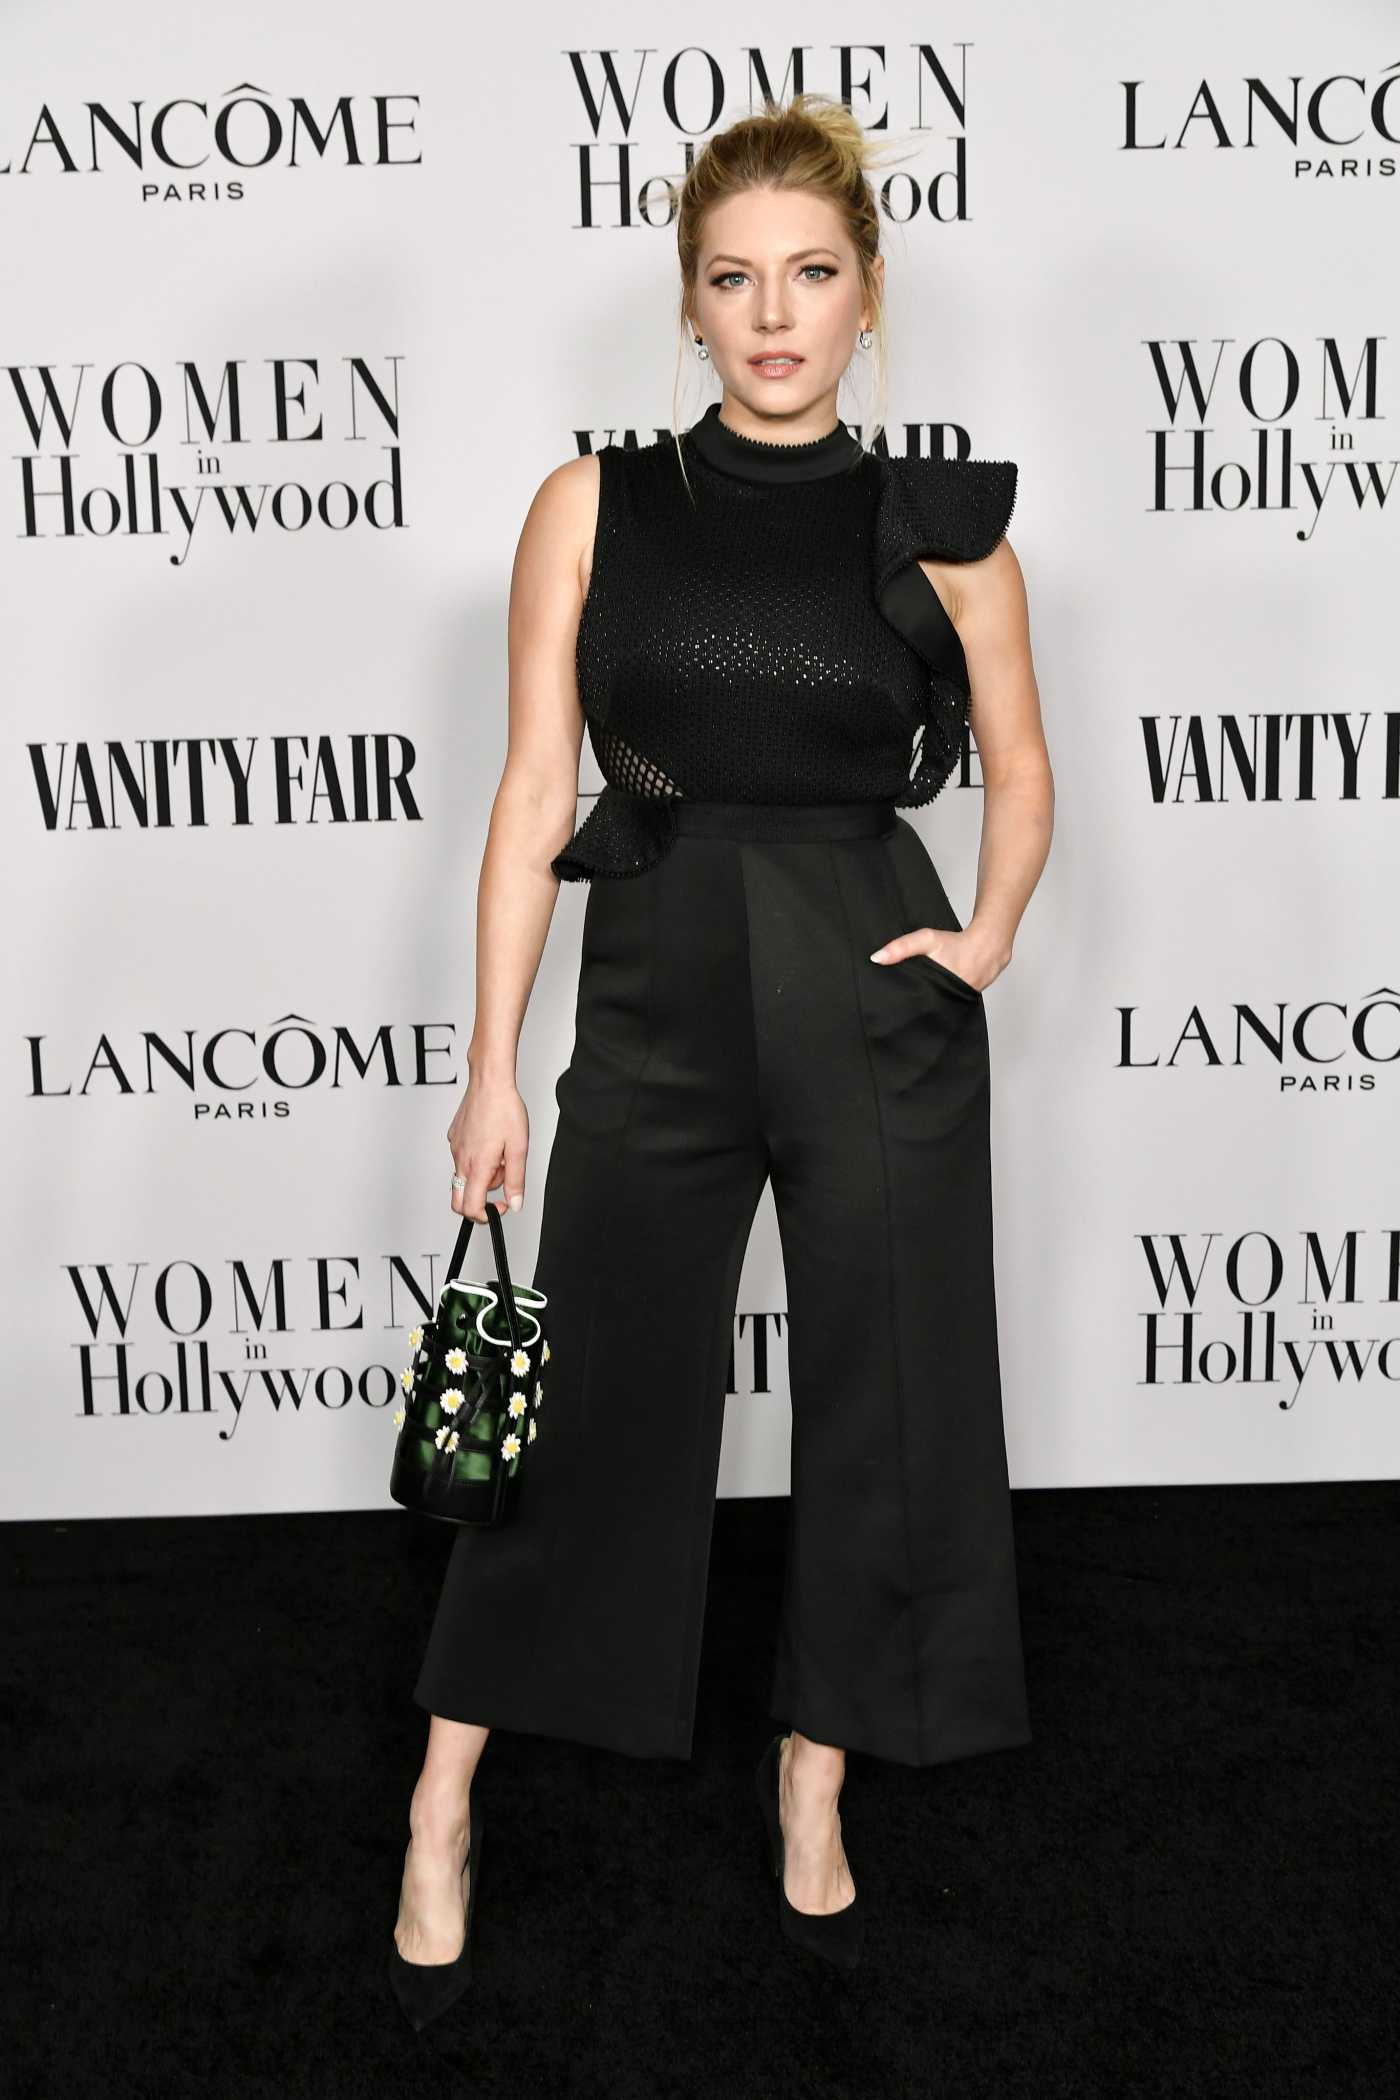 Katheryn Winnick Attends the Vanity Fair and Lancome Women in Hollywood Celebration at SoHo House in West Hollywood 02/06/2020